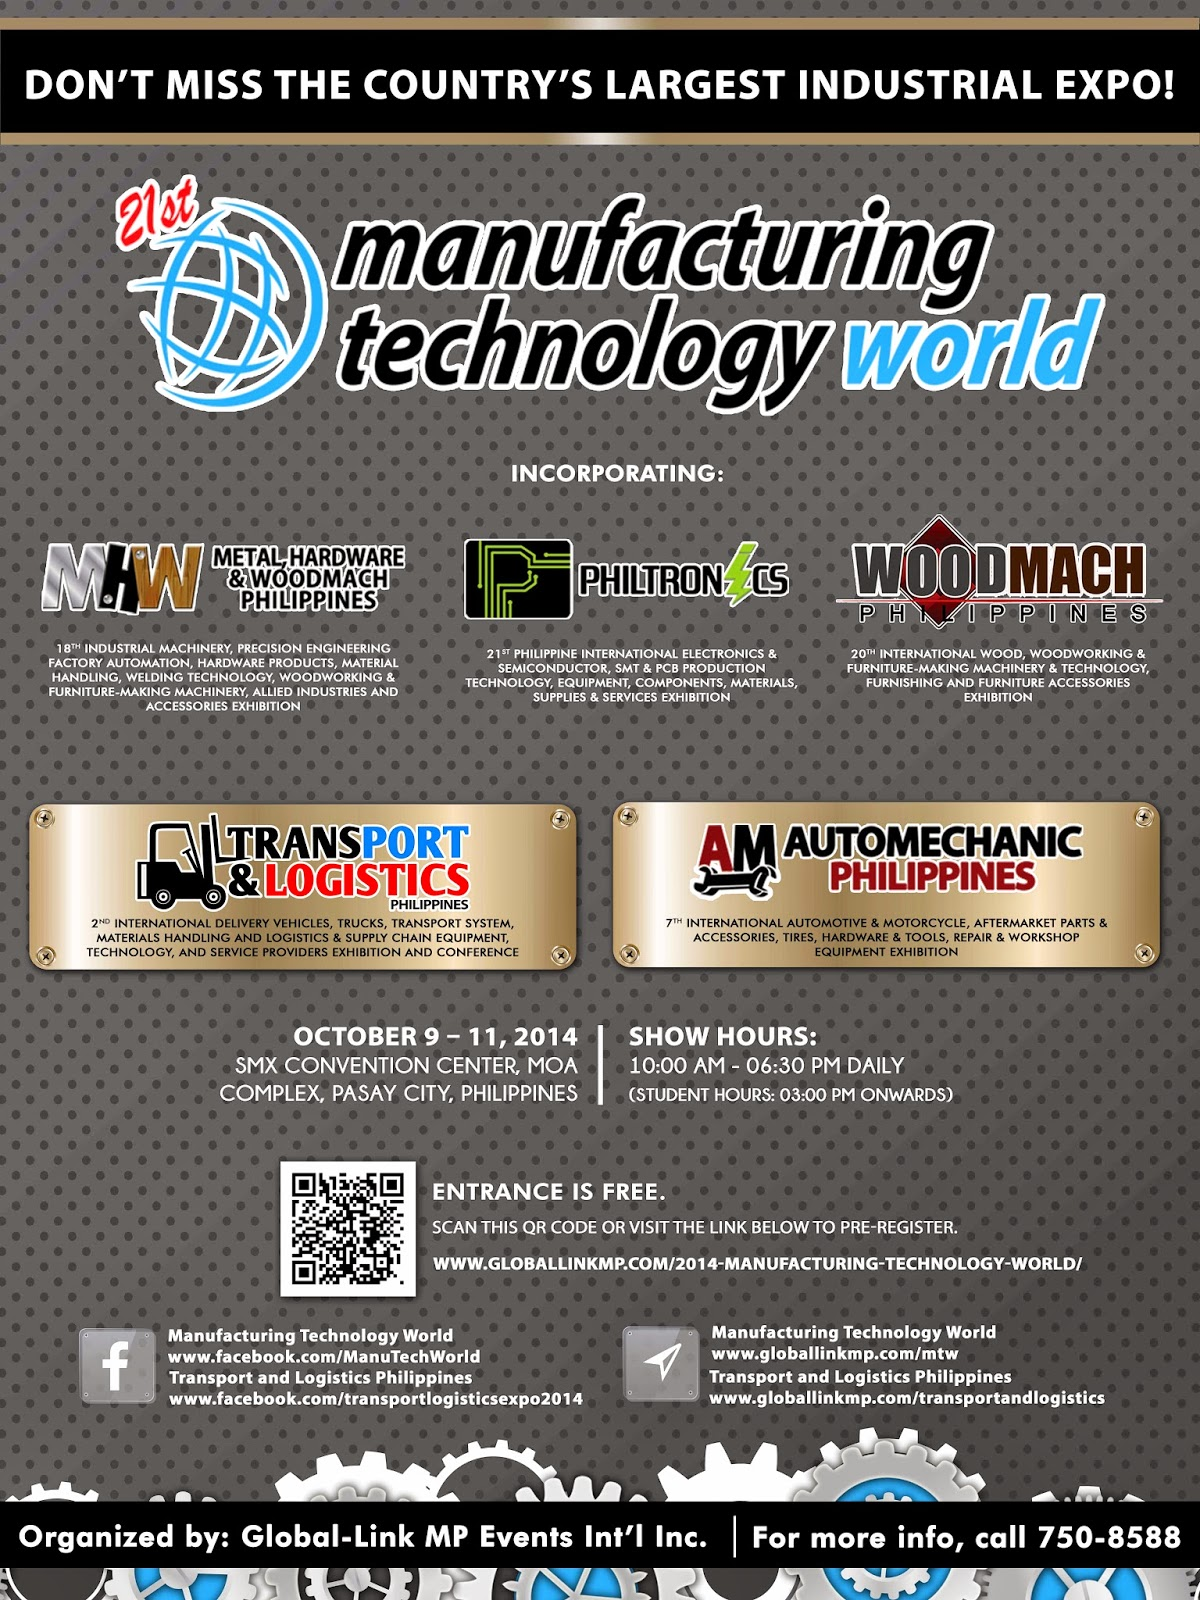 21st Manufacturing Technology World Sets the Stage for Country's Biggest Industrial Expo